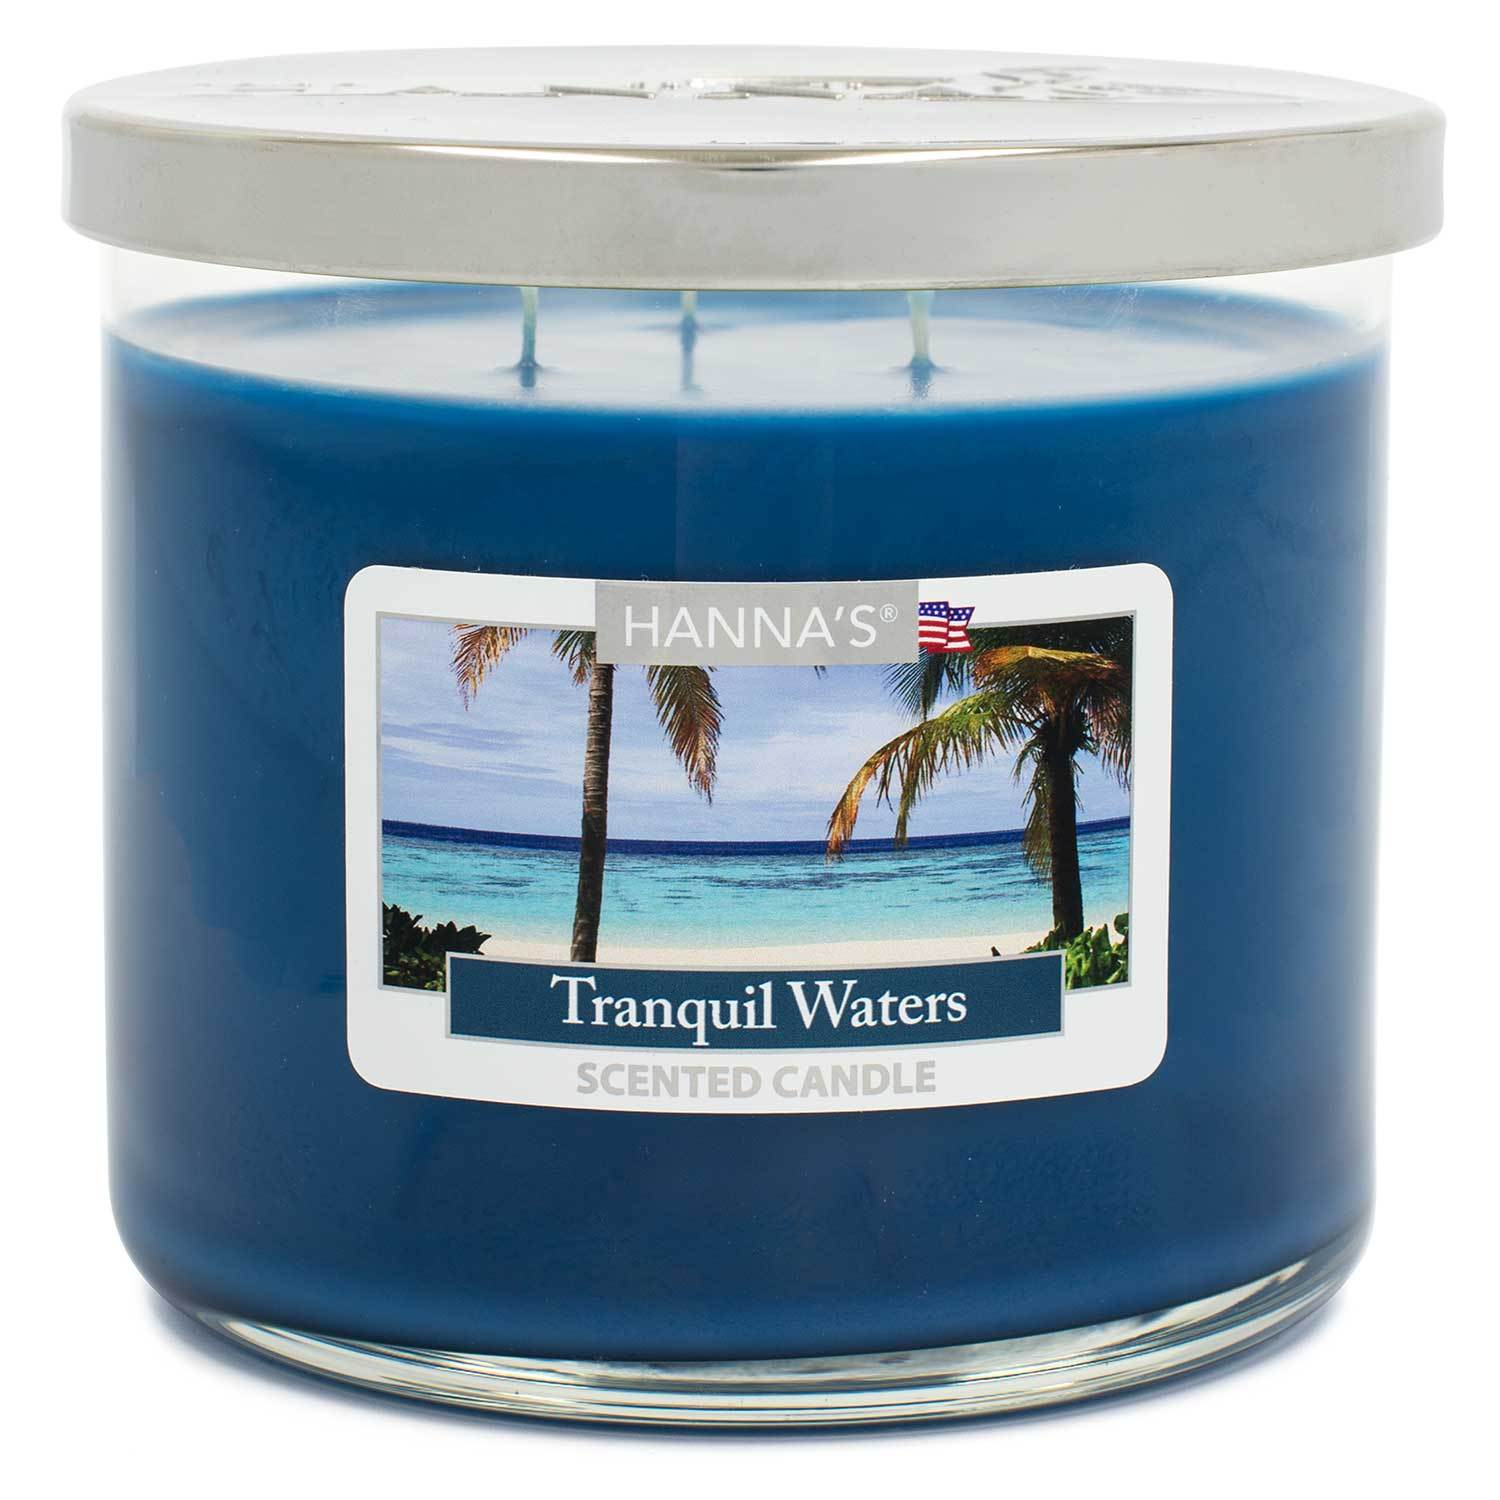 Tranquil Waters Scented Large 3 wick Candle Candles Candlemart.com $ 11.99